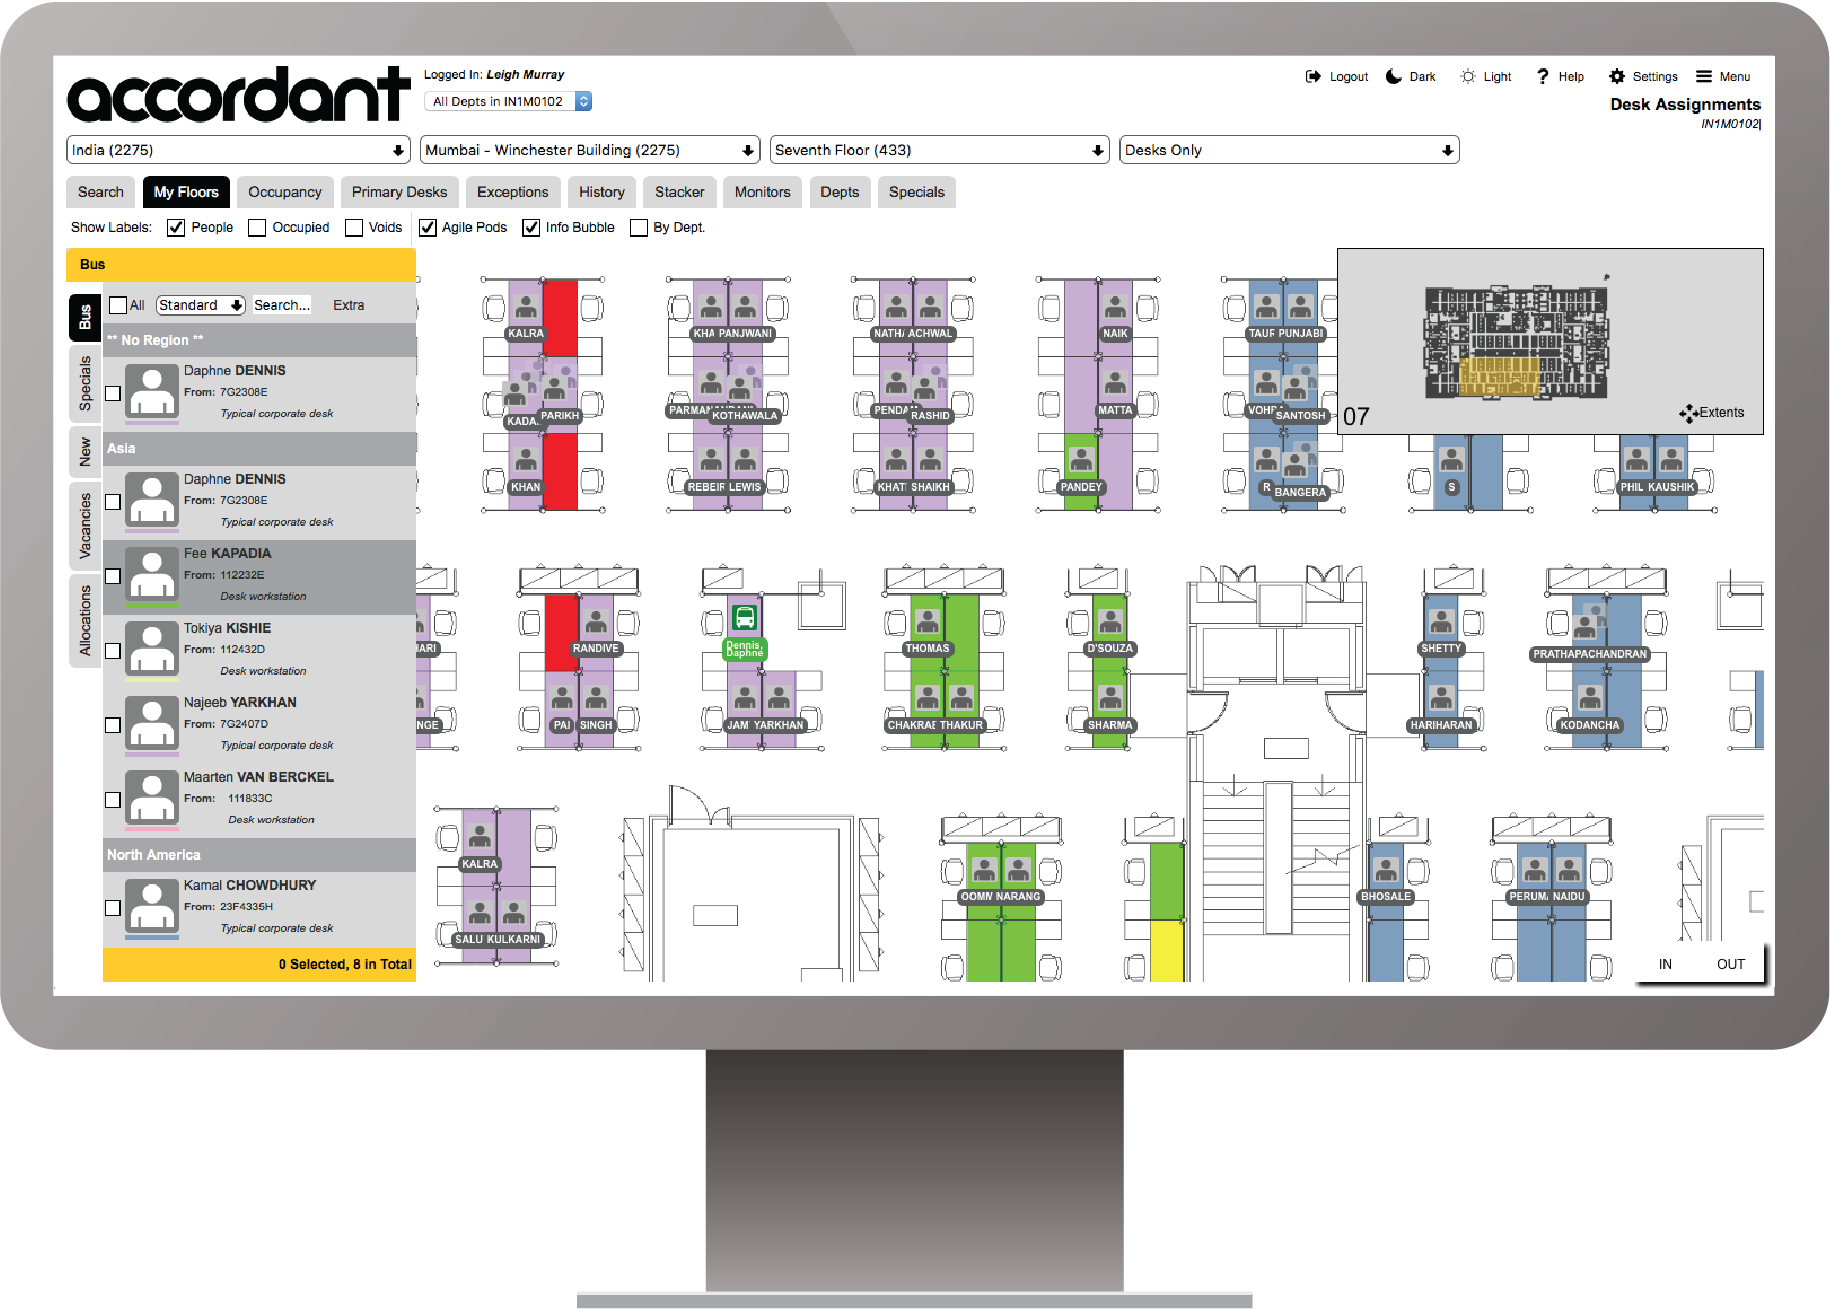 Accordant Software - Clear view of department allocations